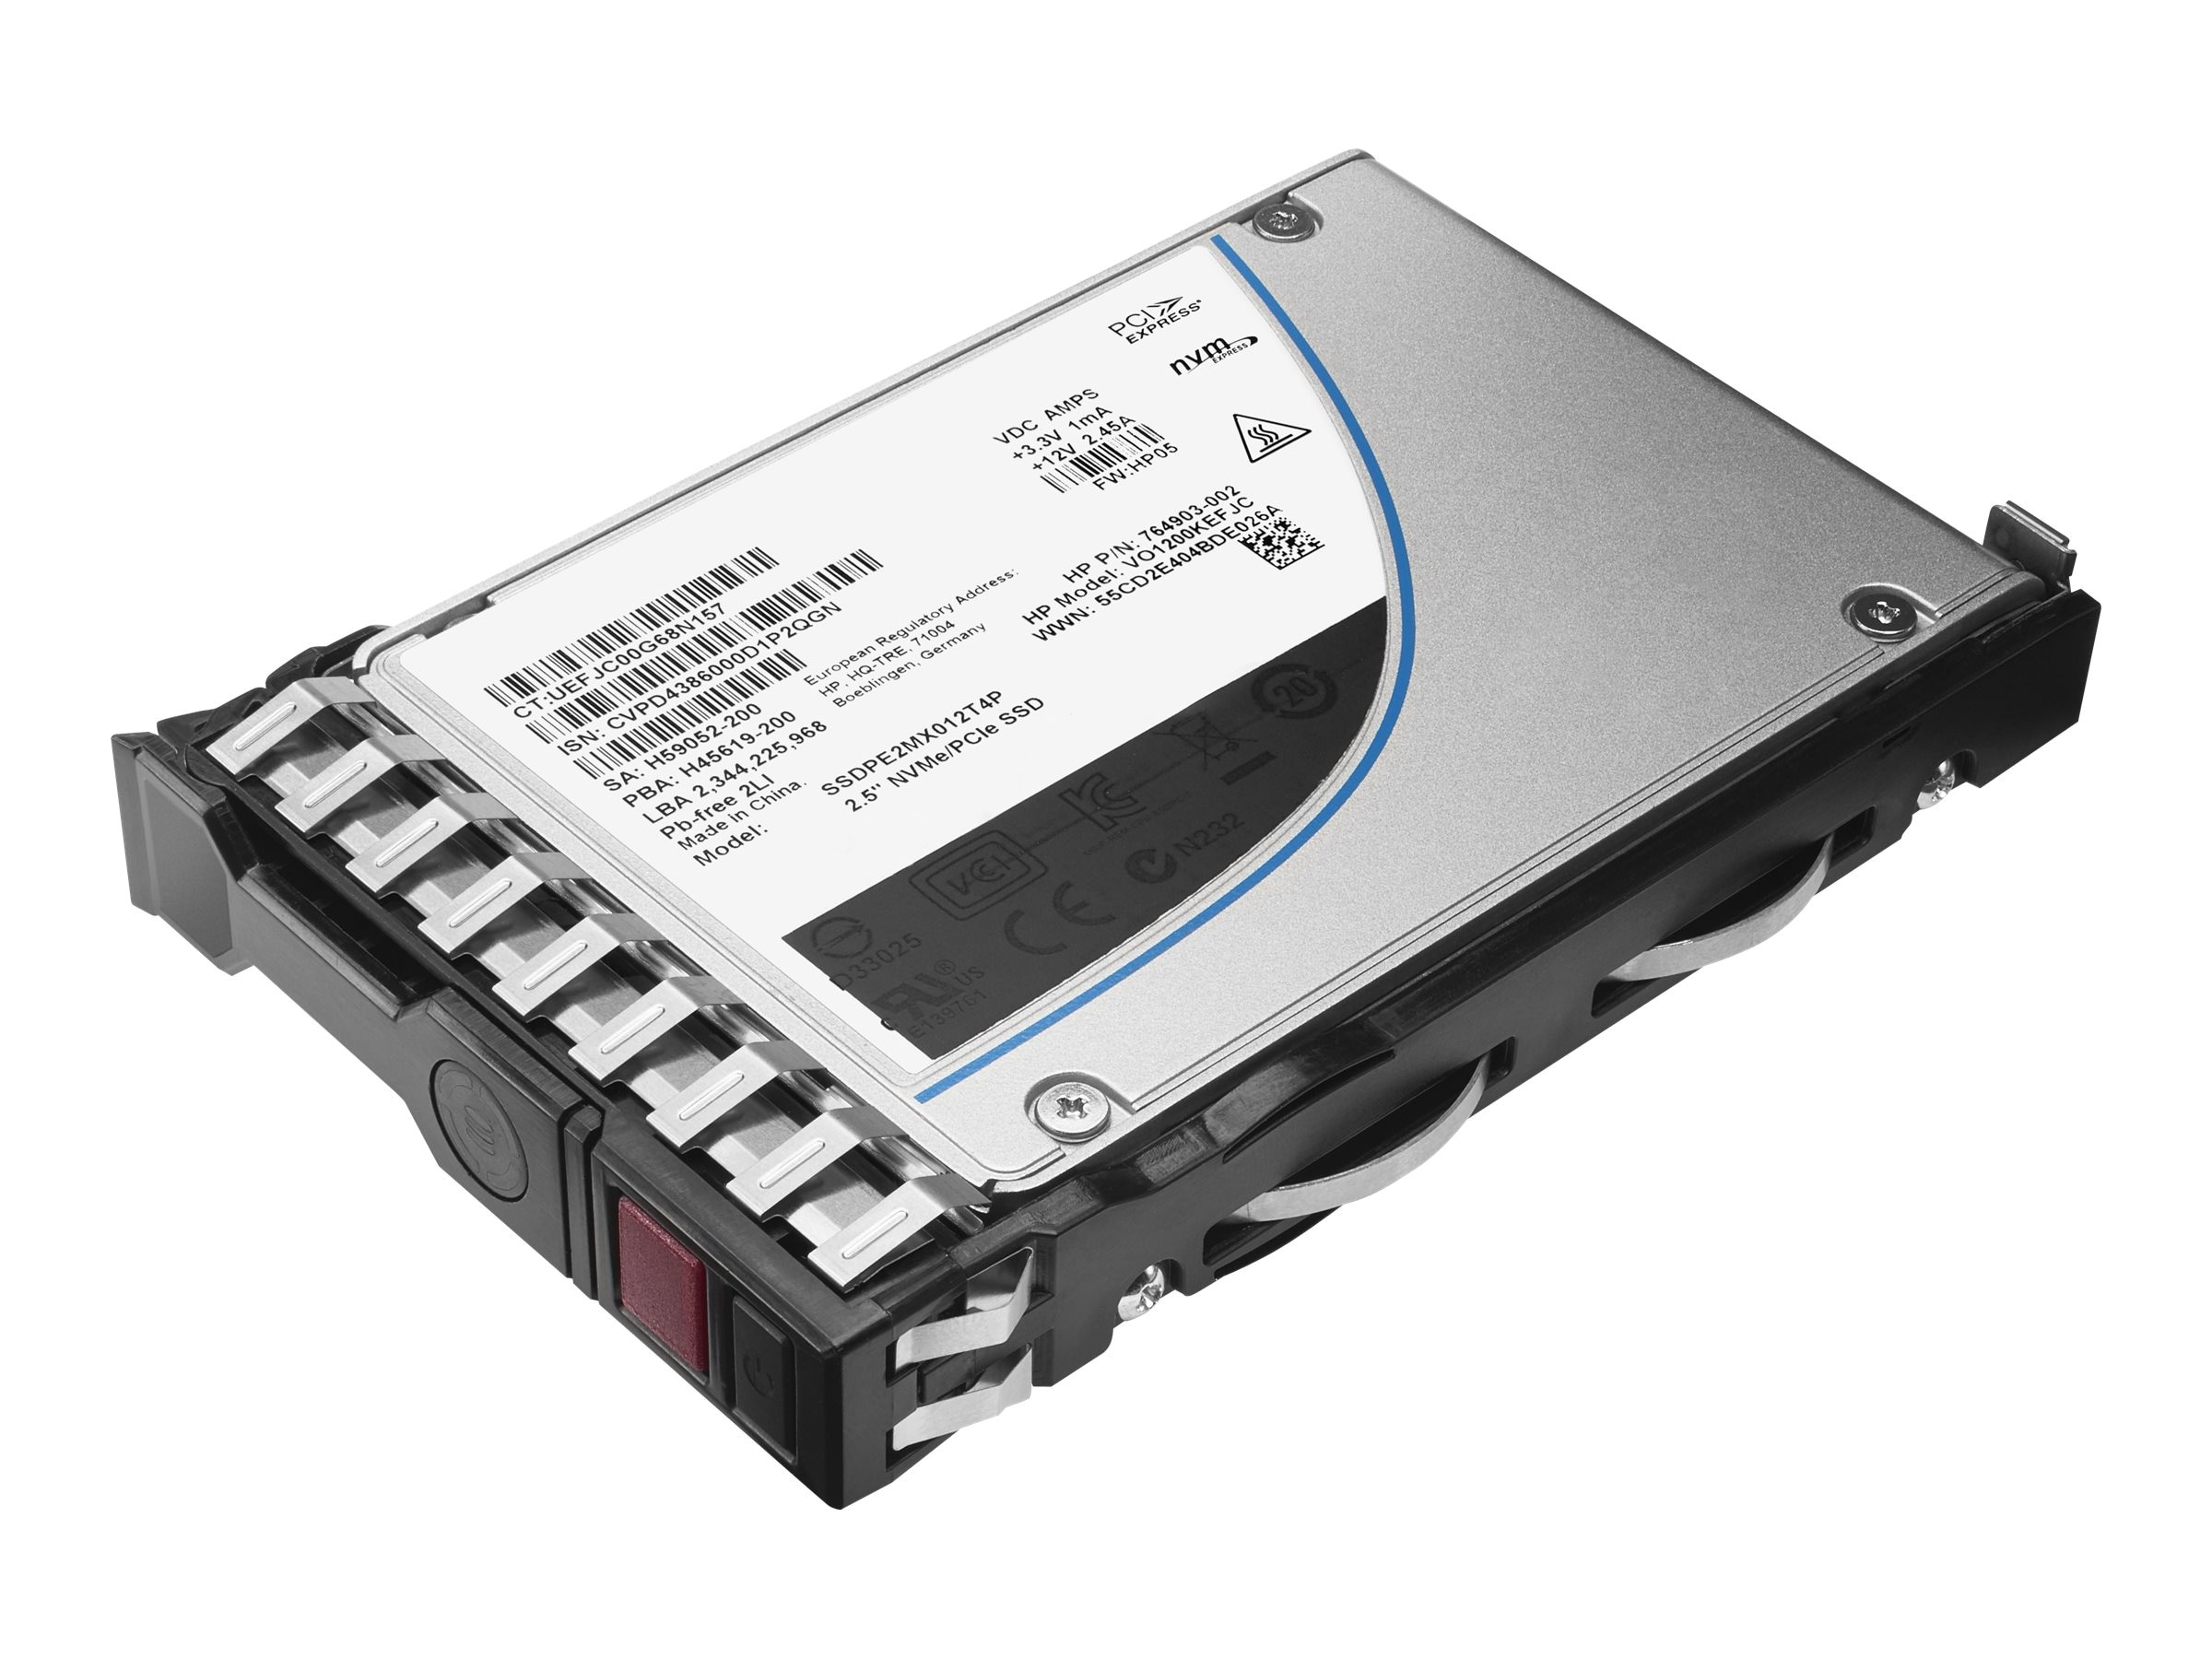 HPE 1.6TB SAS 12Gb s Write Intensive-1 SFF 2.5 SC Solid State Drive for HPE Gen8 Servers & Beyond